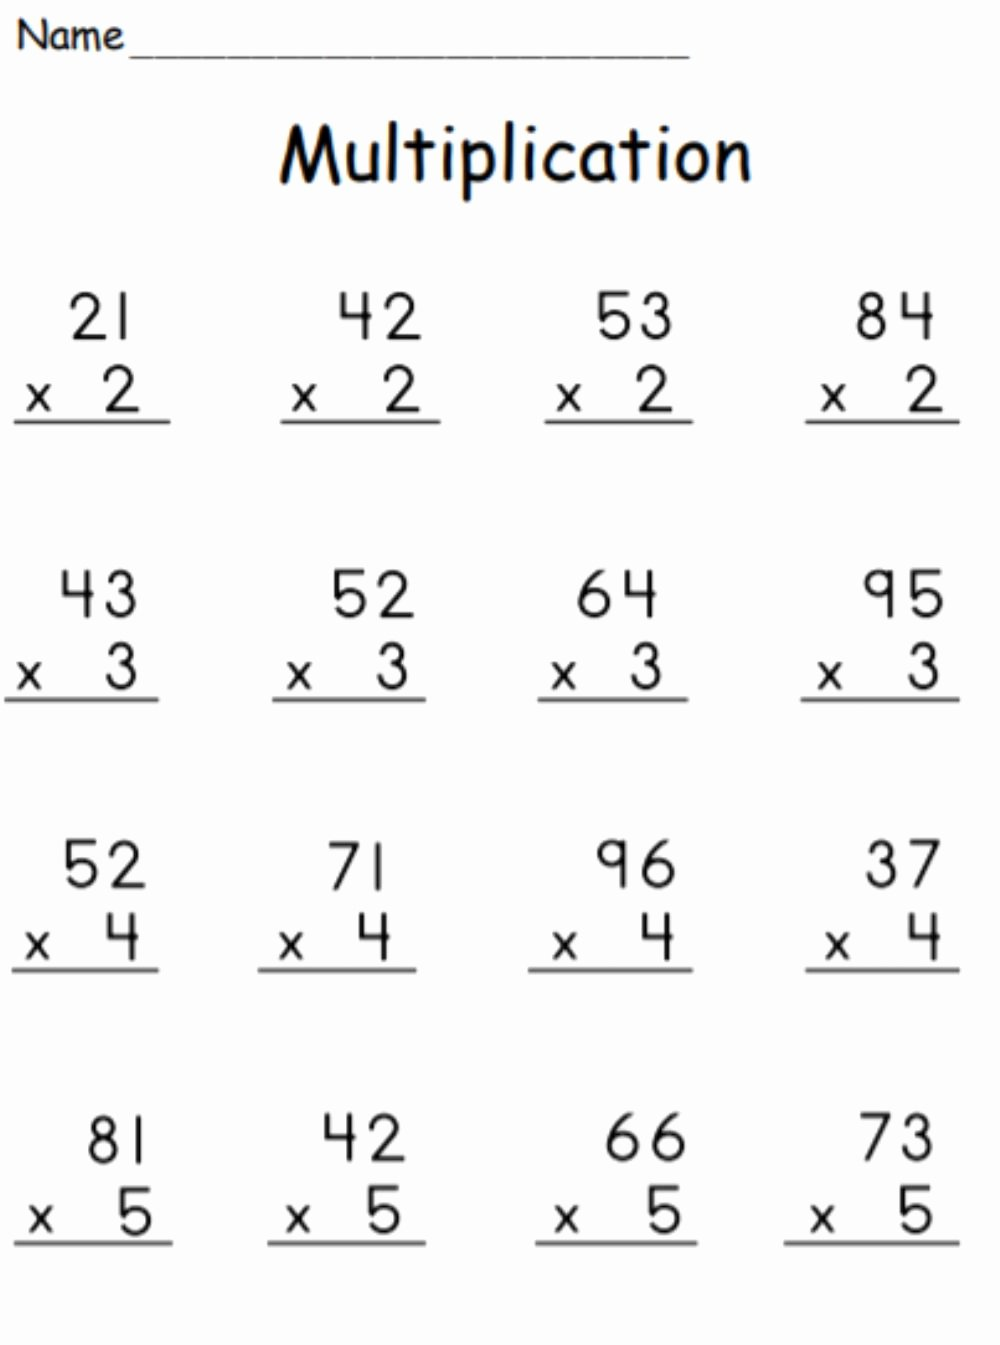 2 Digits Multiplication Worksheets New Multiplication 2 Digit by 1 Digit with Regrouping